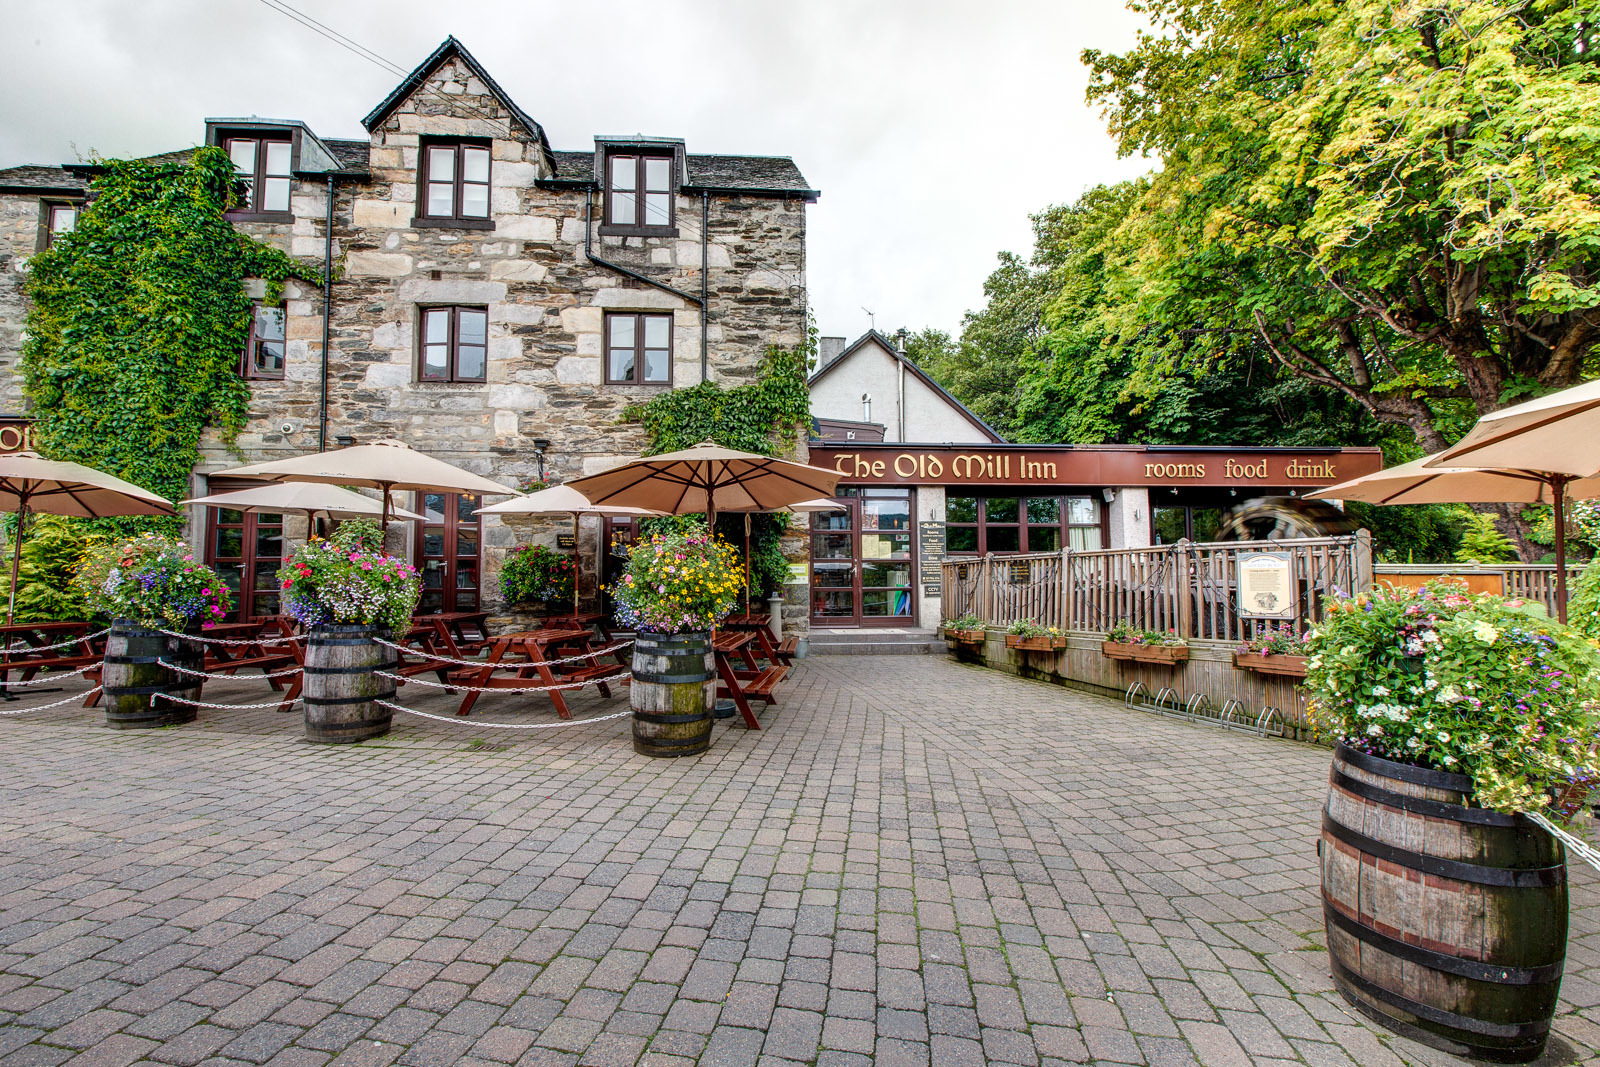 The Old Mill Inn at Pitlochry.